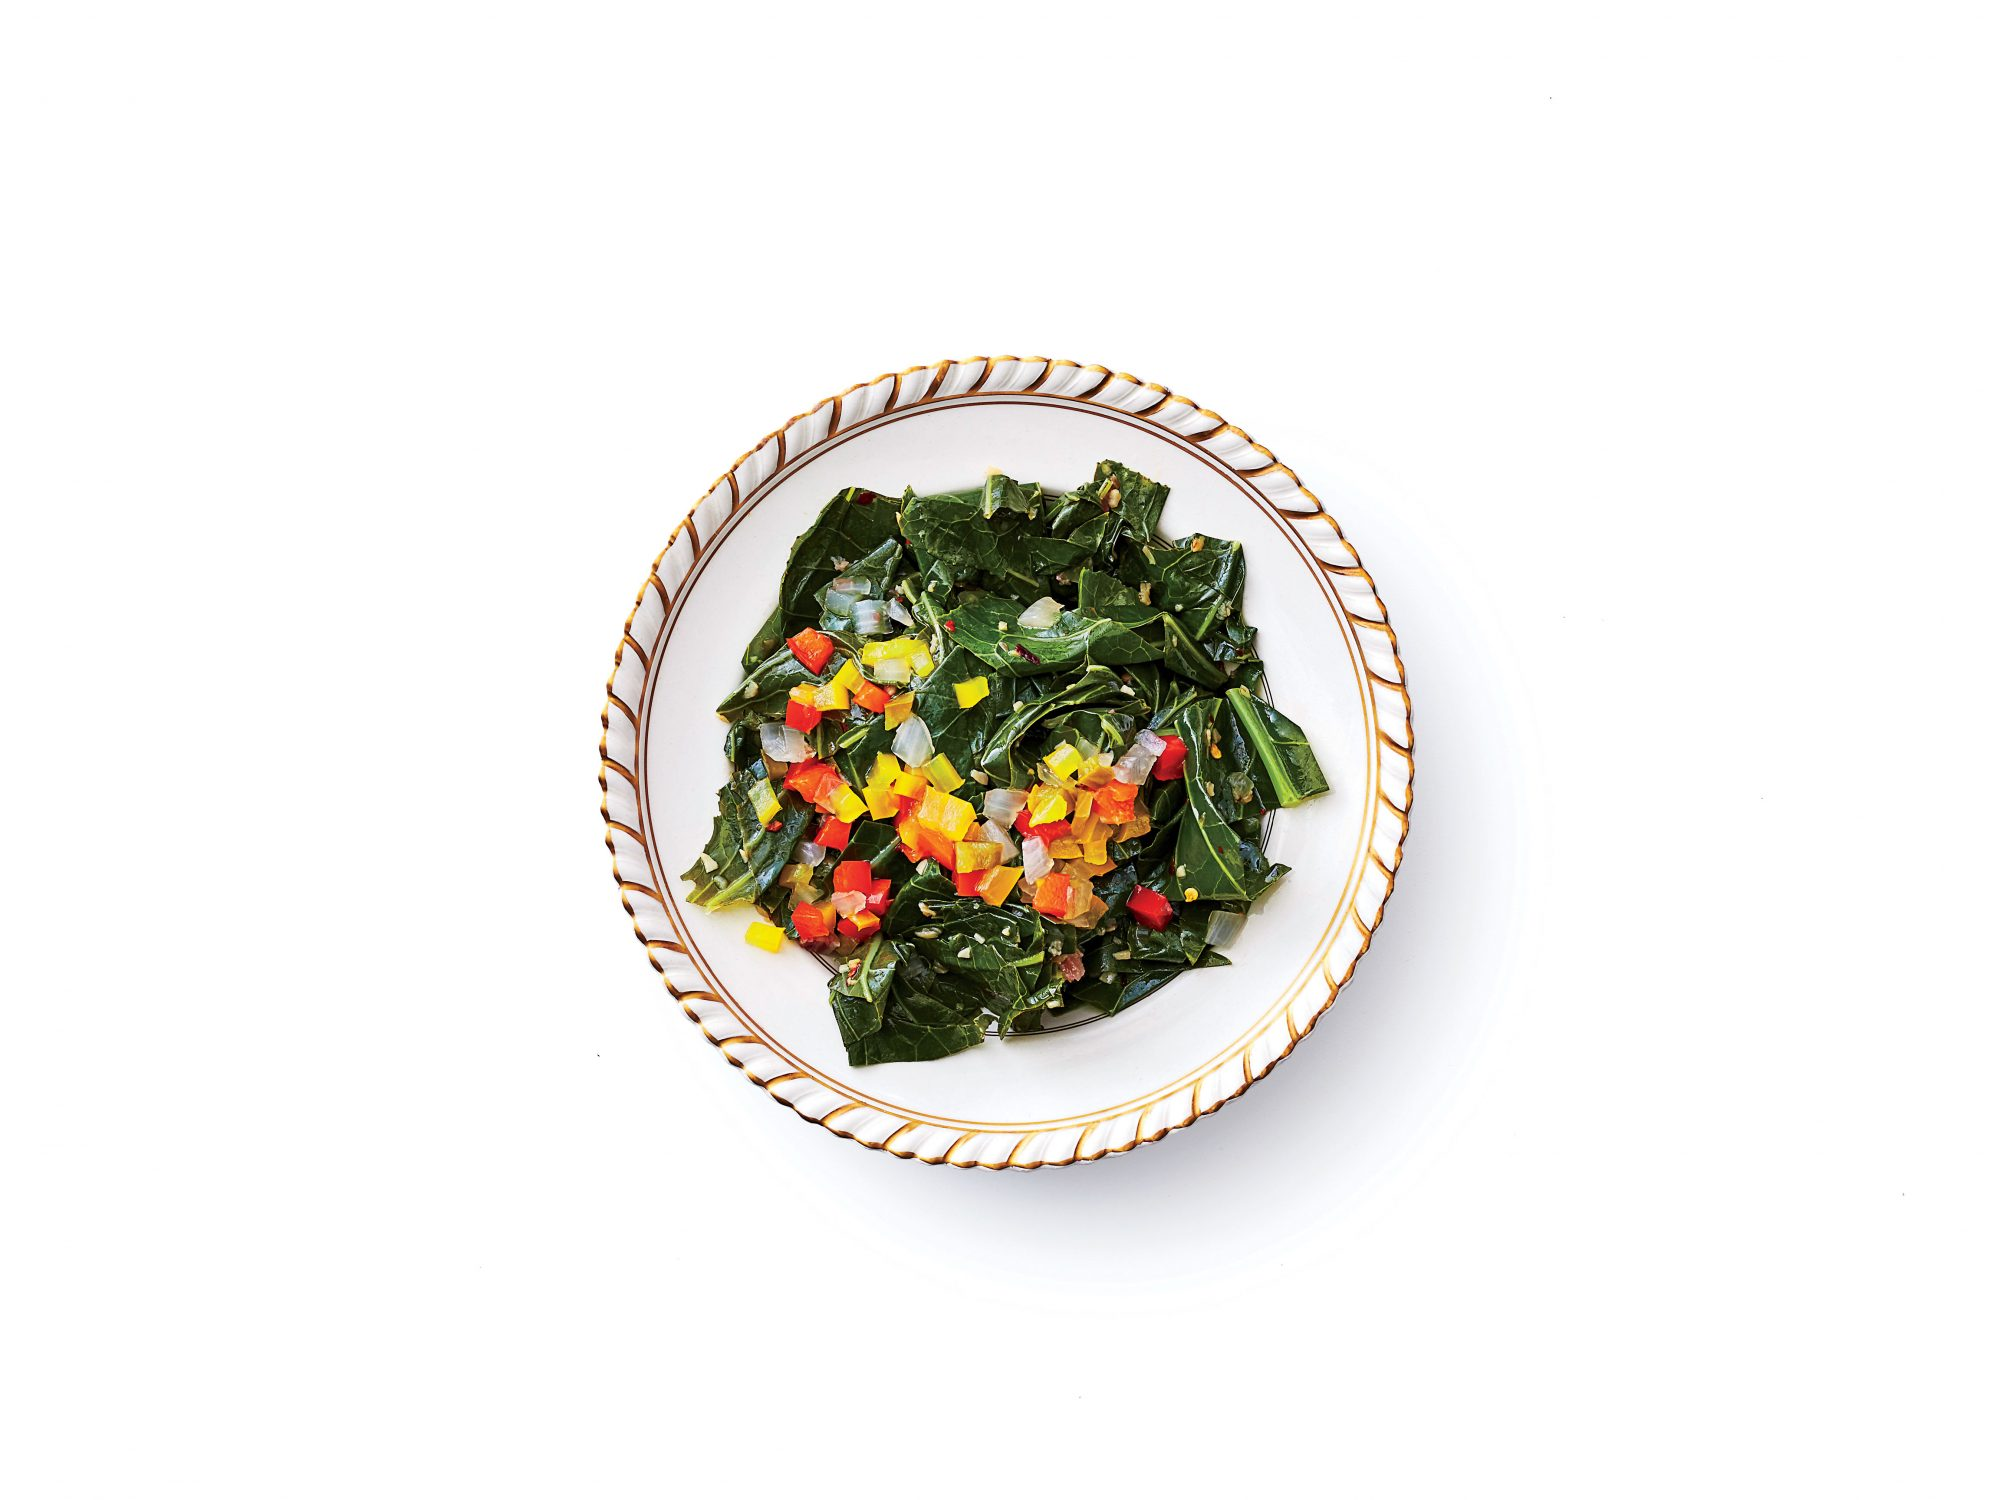 Garlicky Collard Greens with Confetti Chowchow Recipe Image